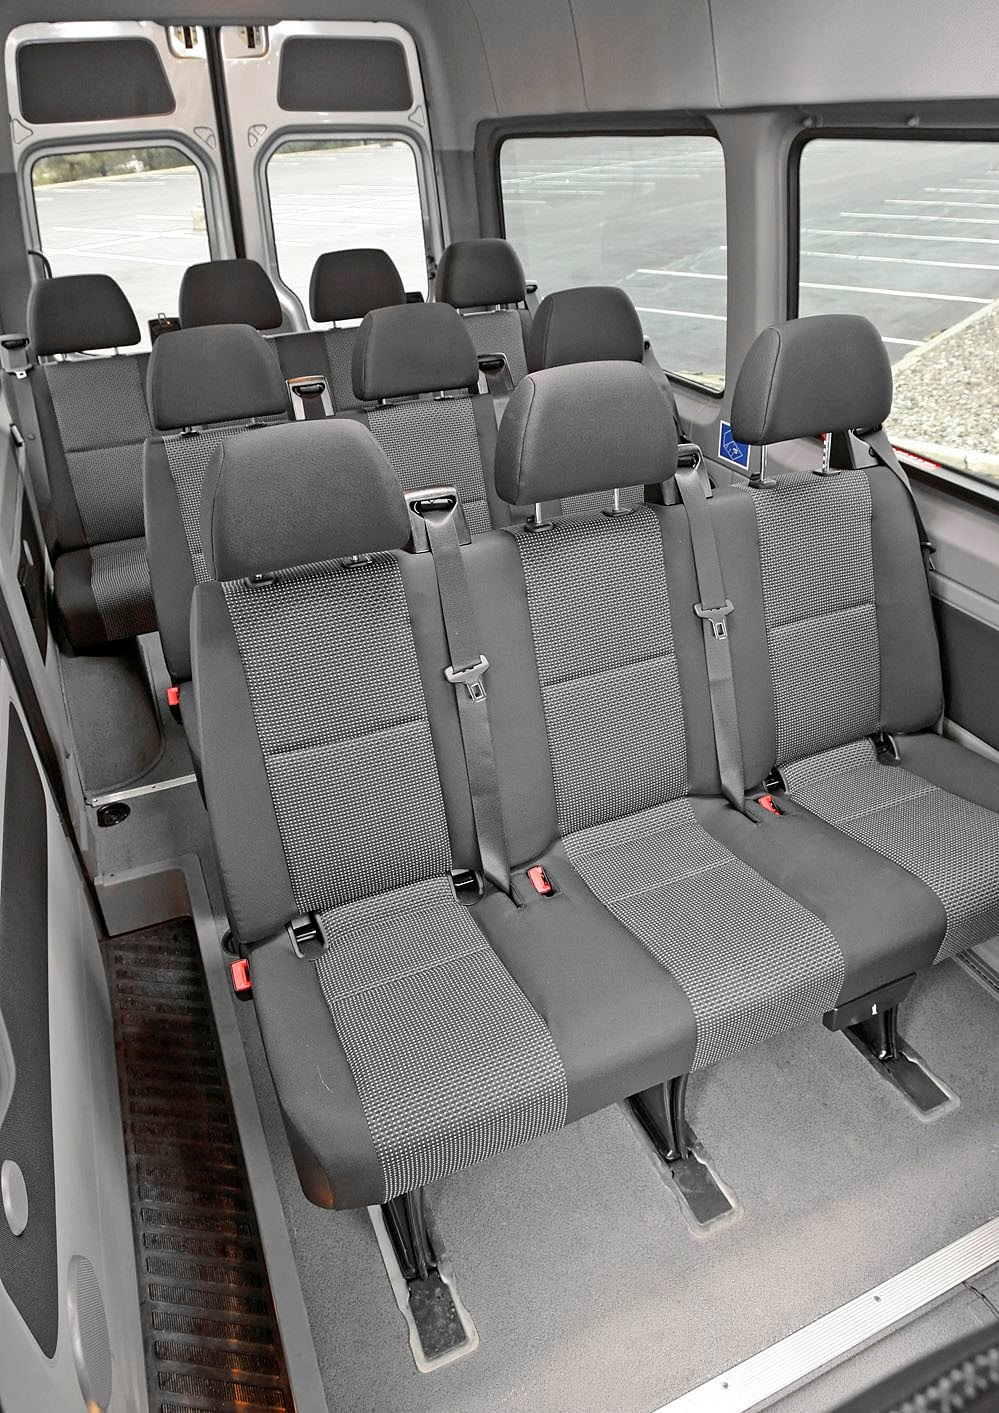 2010-Mercedes-Benz-Sprinter-2500-interior.jpg